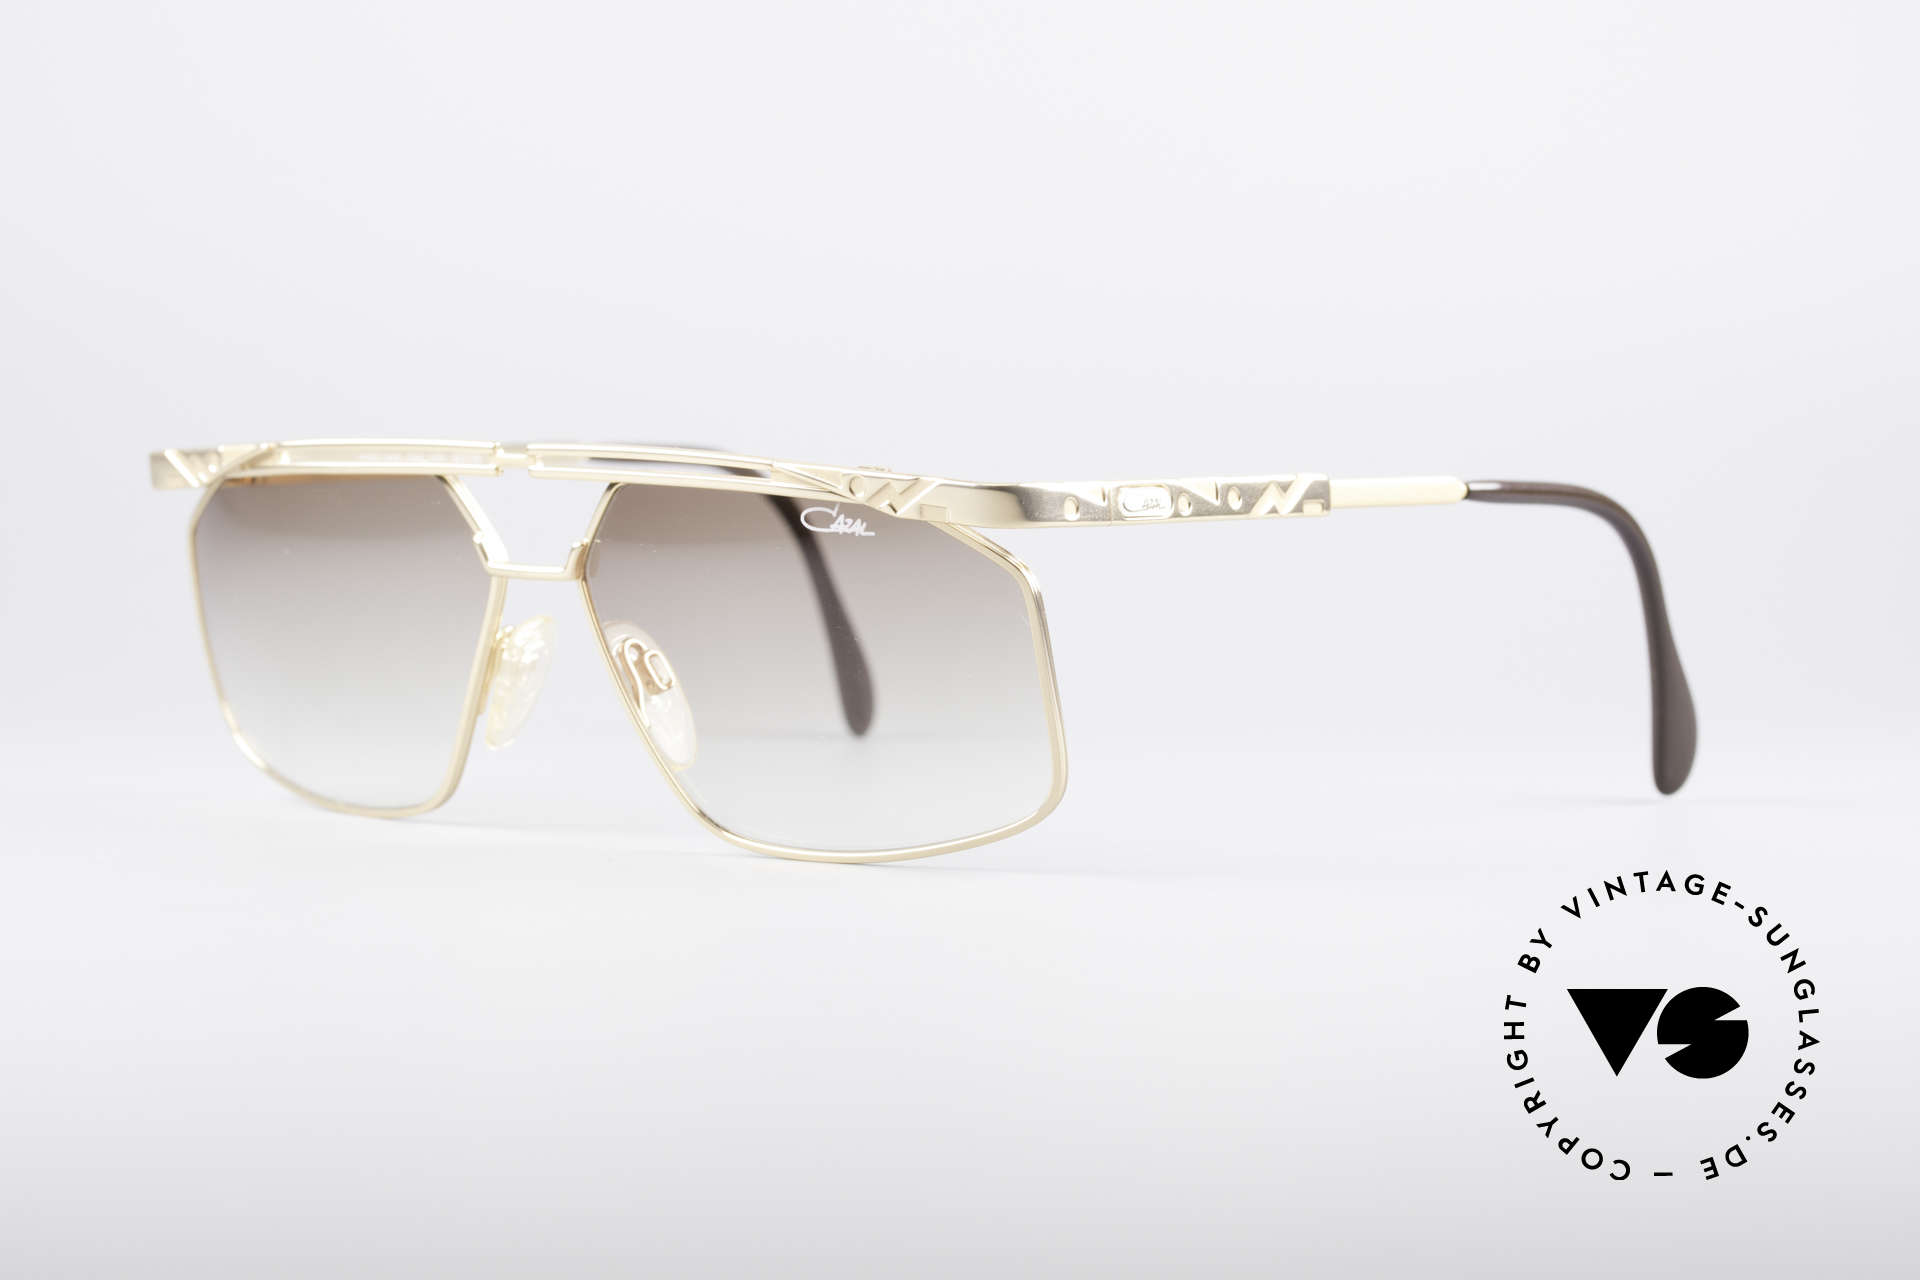 Cazal 966 90's Men's Designer Shades, high-end quality (You must feel this!), 100% UV, Made for Men